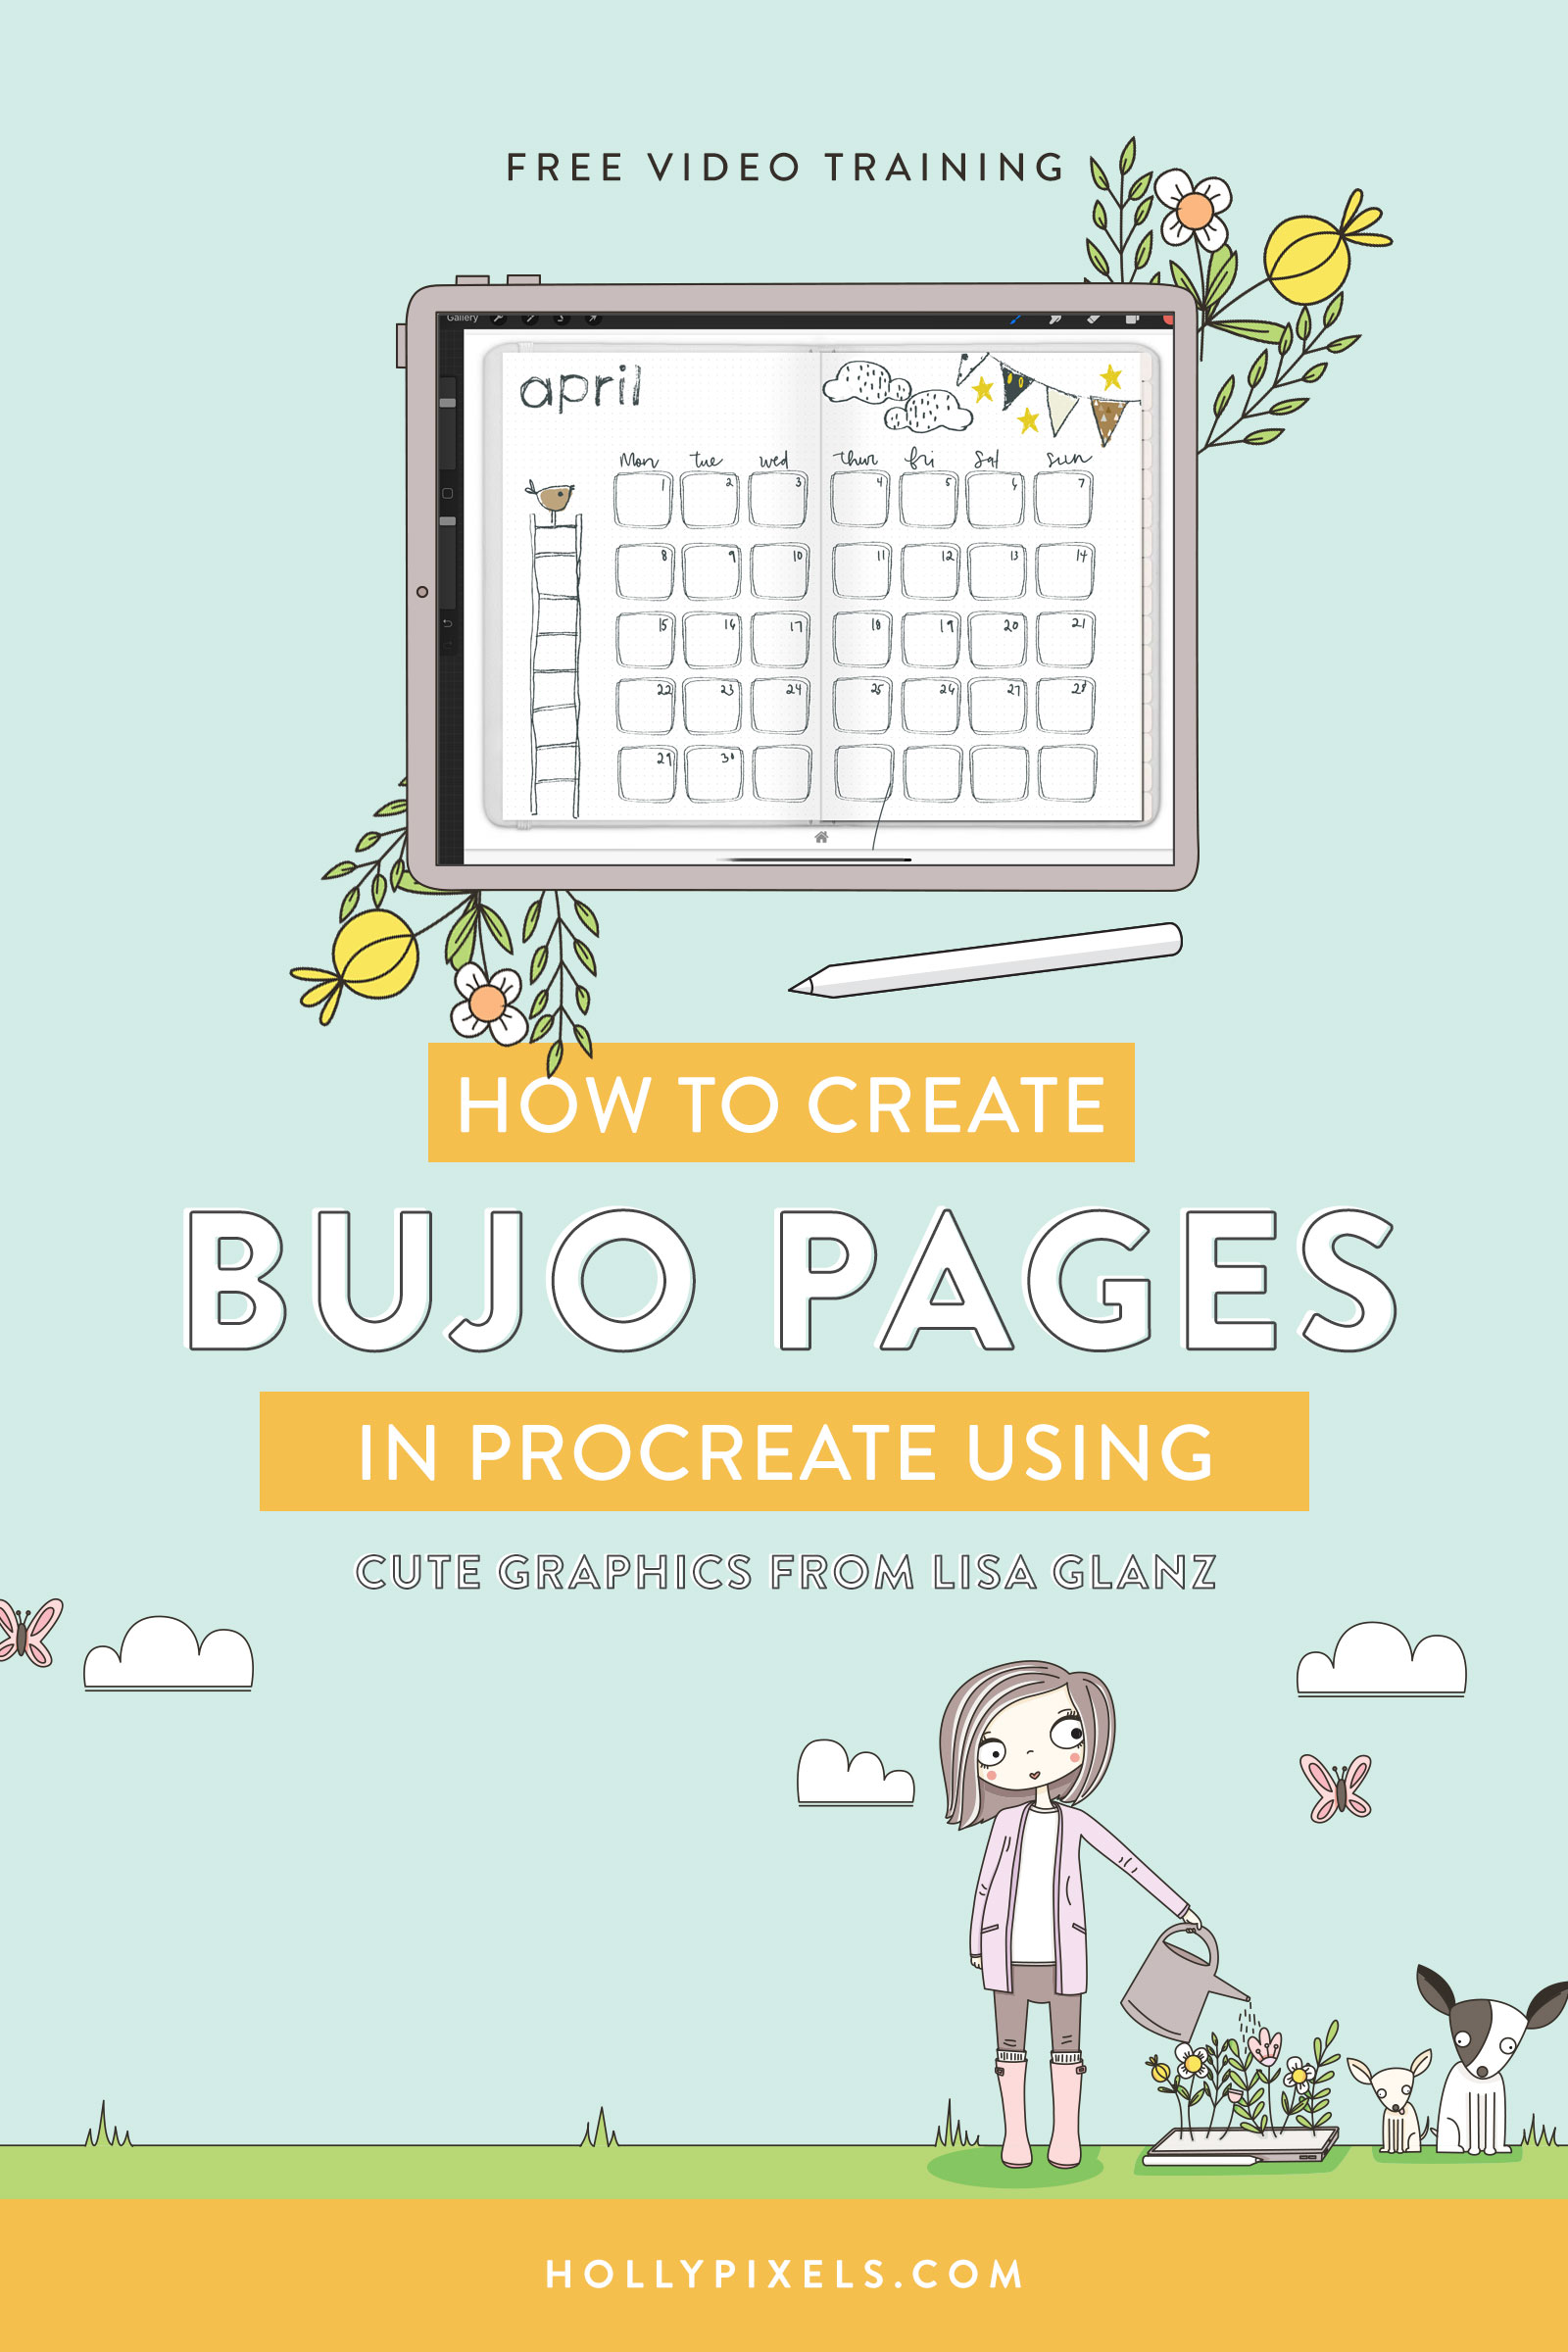 Learn how to create a bujo page in Procreate for your digital bullet journal! I'll be using graphics from Lisa Glanz and Design Cuts to set up a background page for my bullet journal in Goodnotes using Procreate.